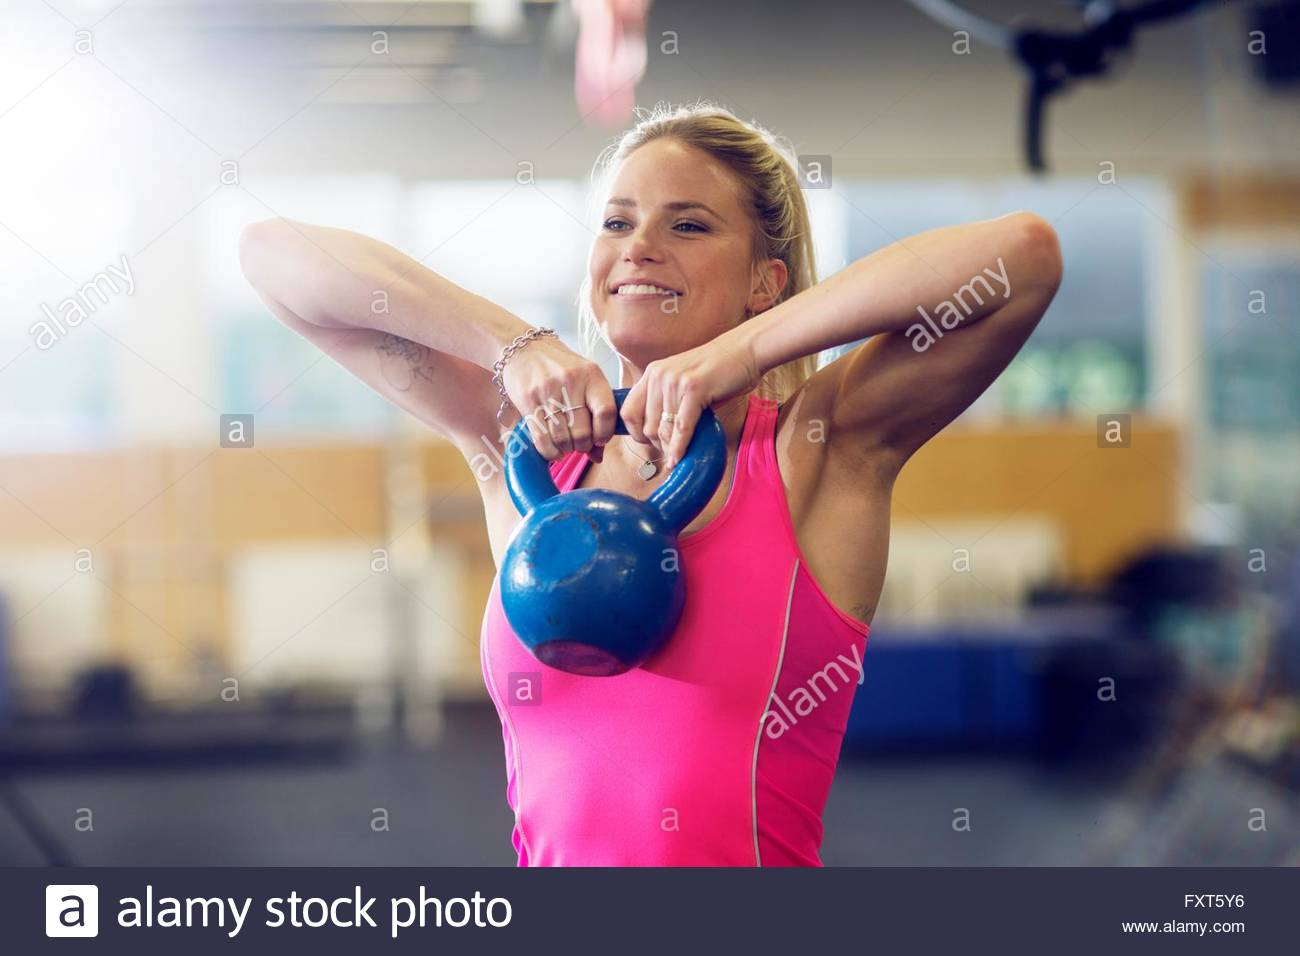 Young woman lifting kettlebell in gym - Stock Image